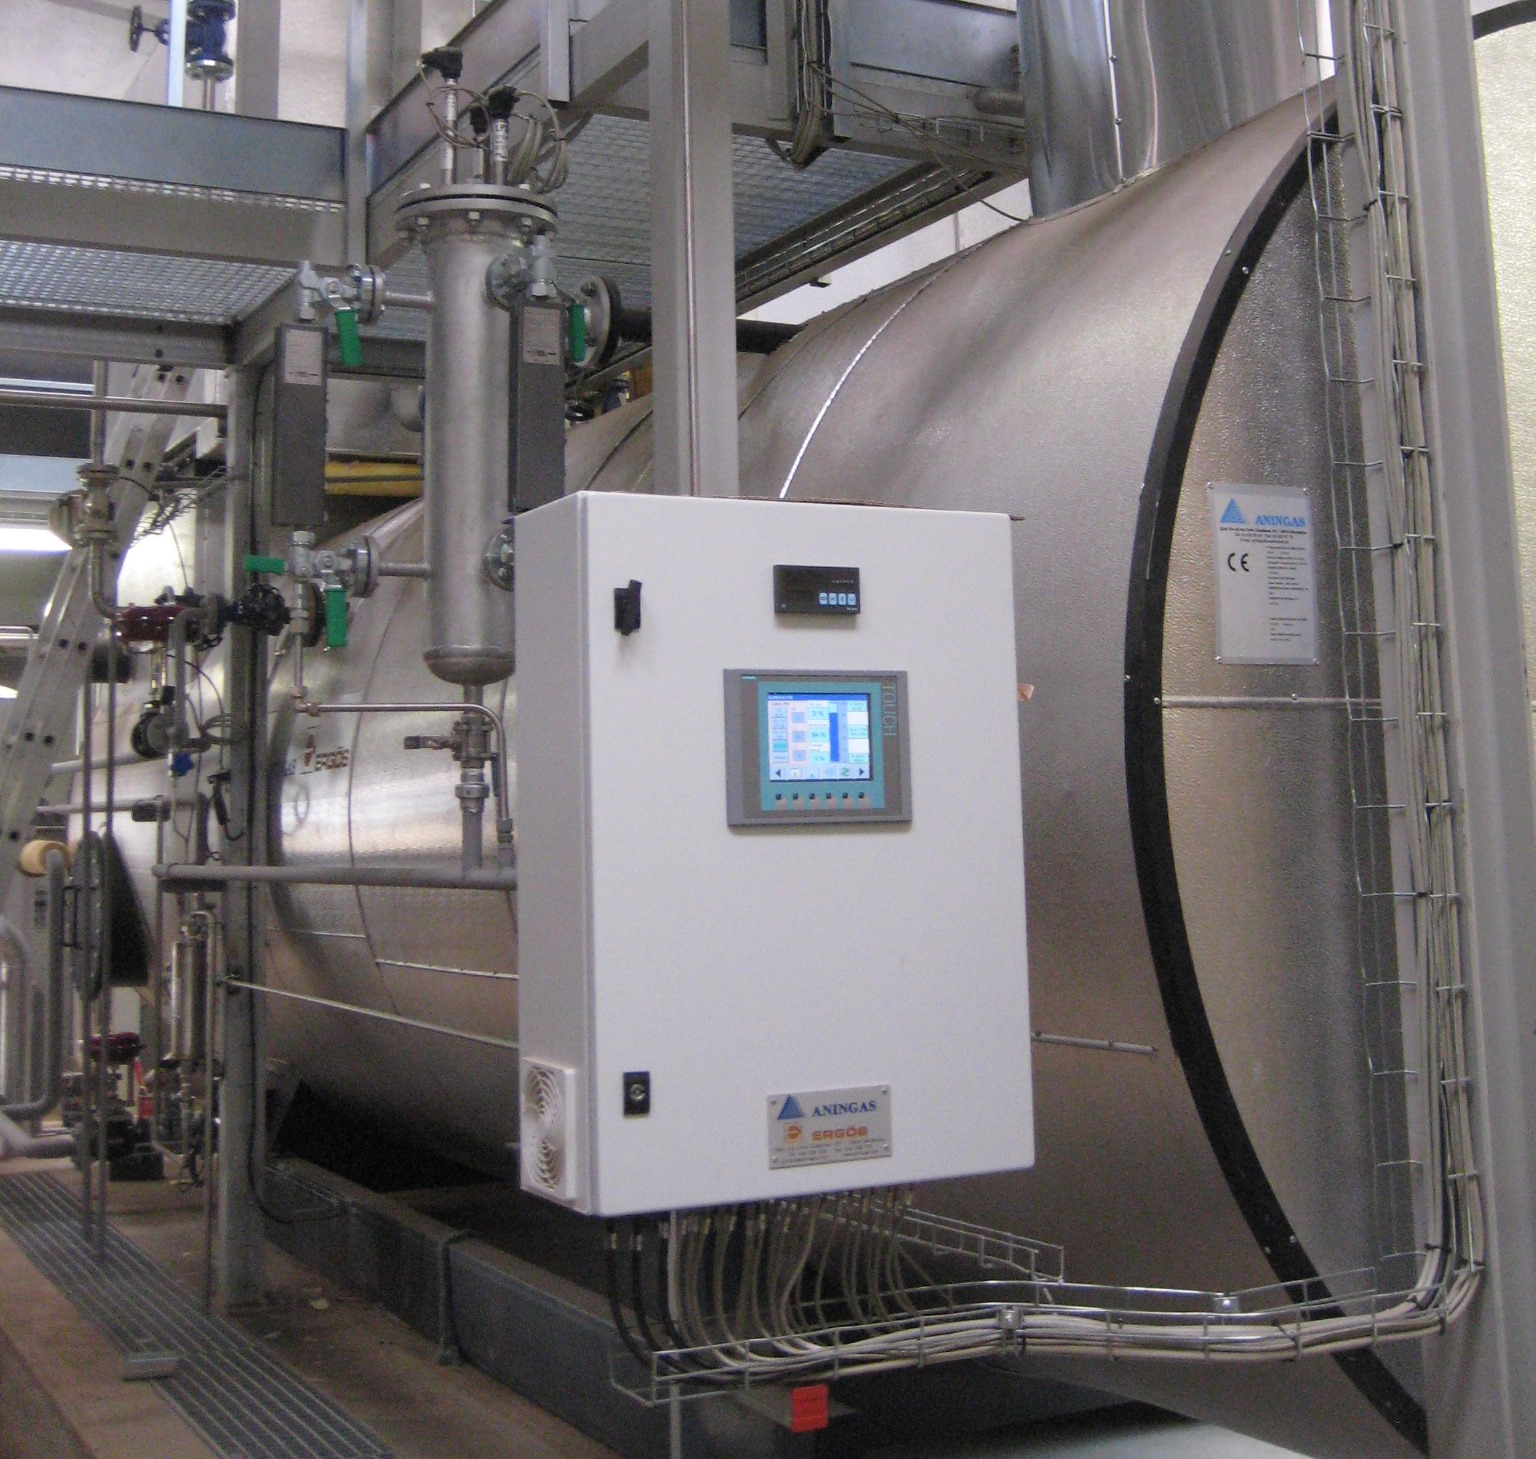 Aningas Ergos S A WASTE HEAT RECOVERY BOILERS COGENERATION